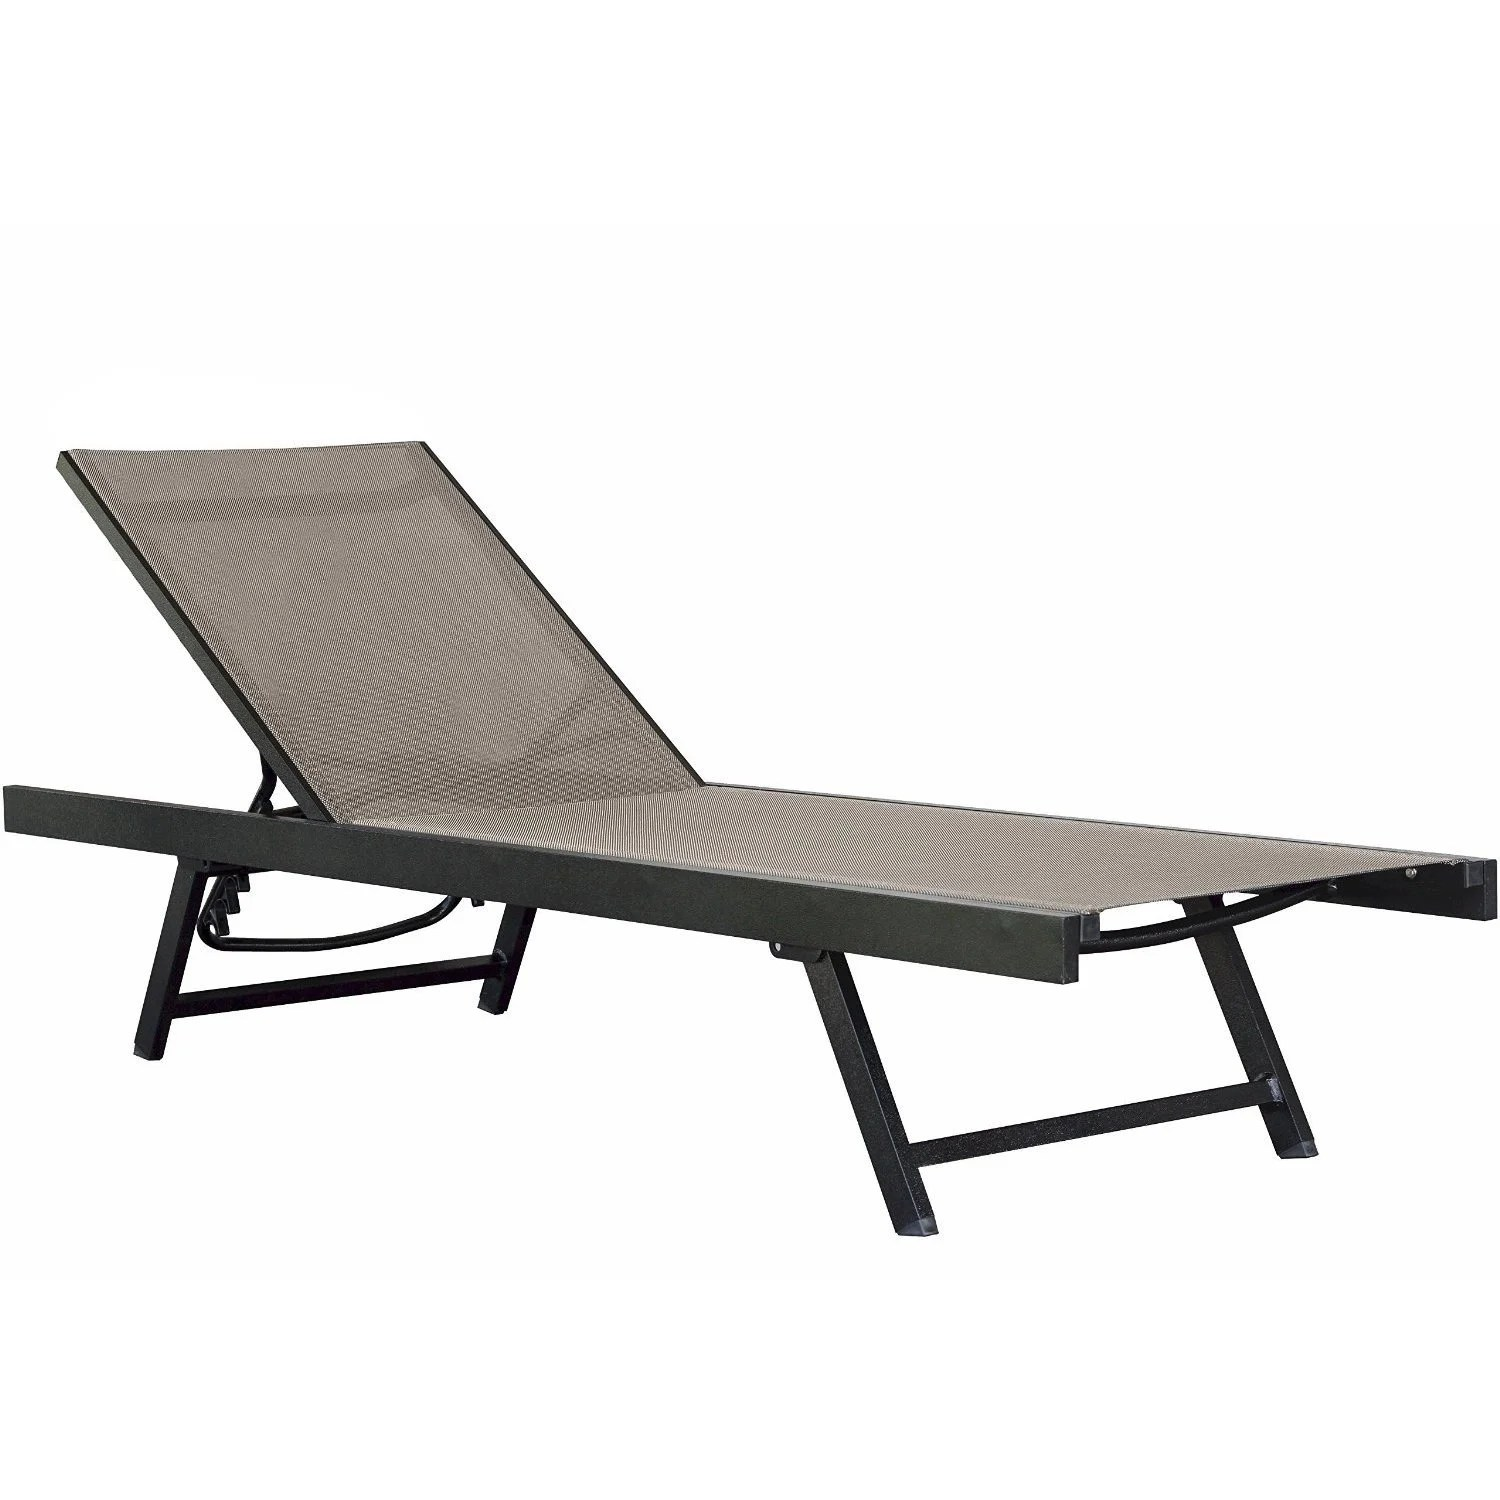 Pool Chaise Lounge Chairs Vivere Urban Aluminum Outdoor Patio Chaise Lounge Chair